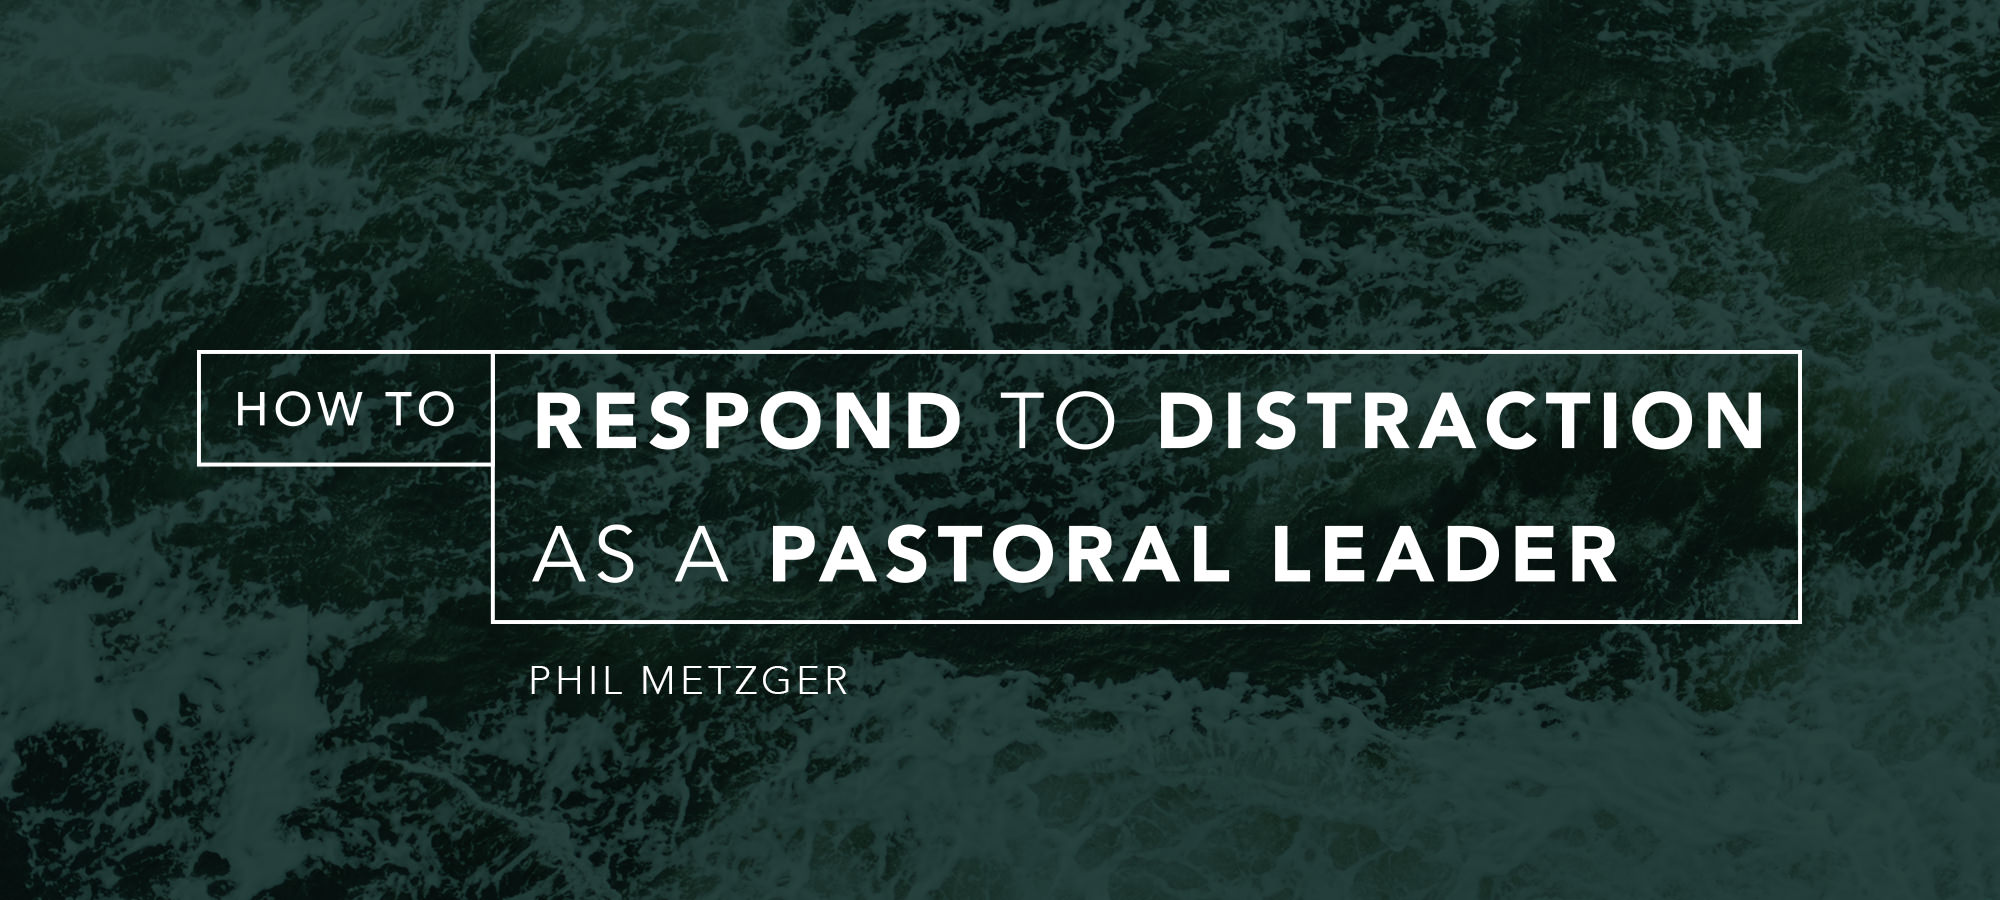 How to Respond to Distraction as a Pastoral Leader